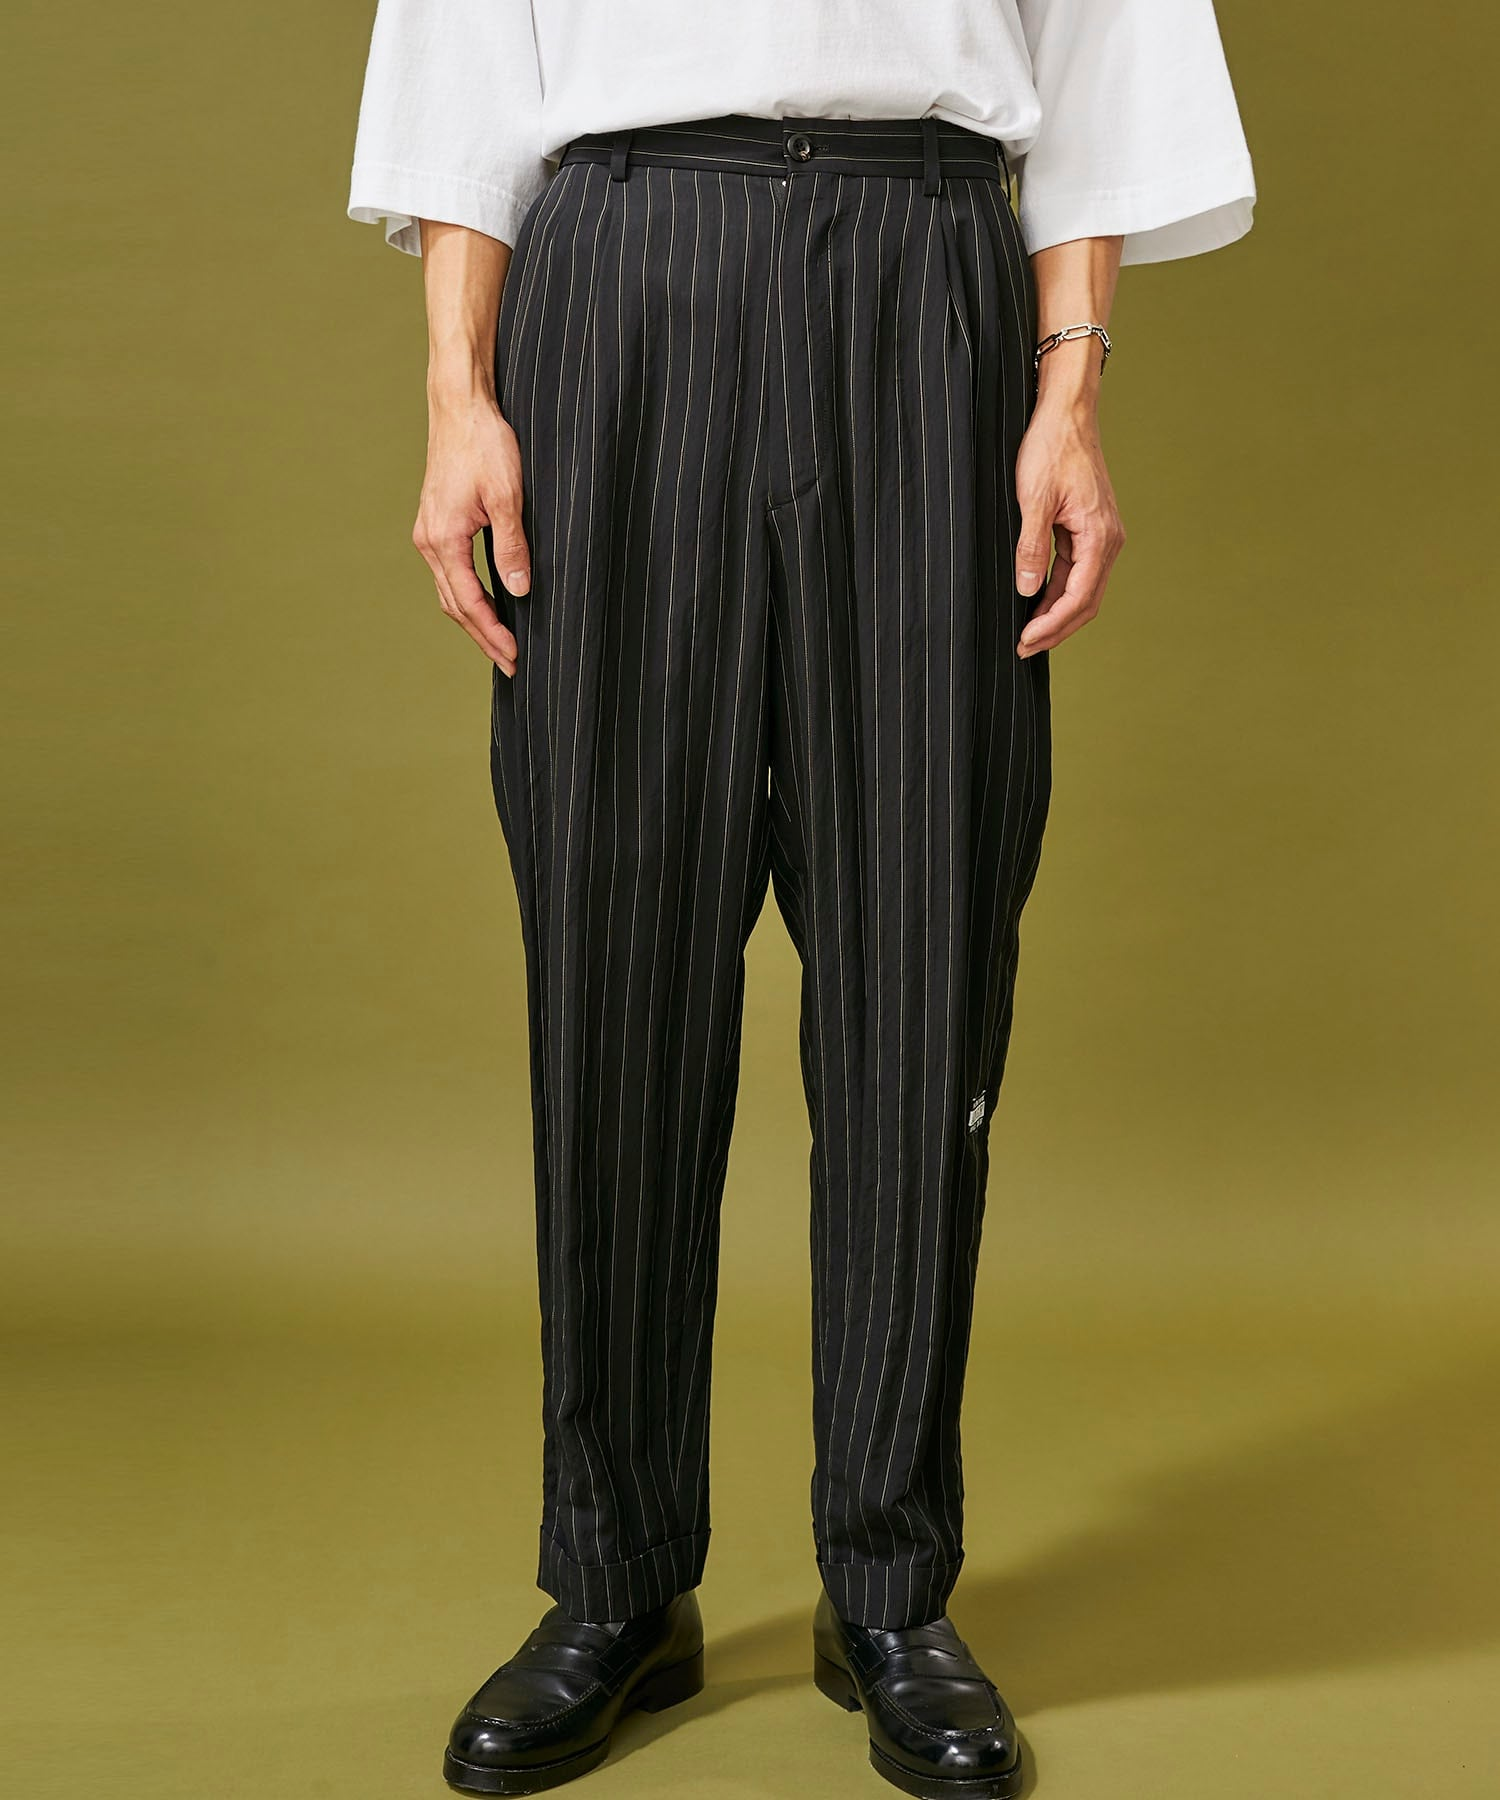 RAYON 2TUCK TAPERED PANTS JieDa